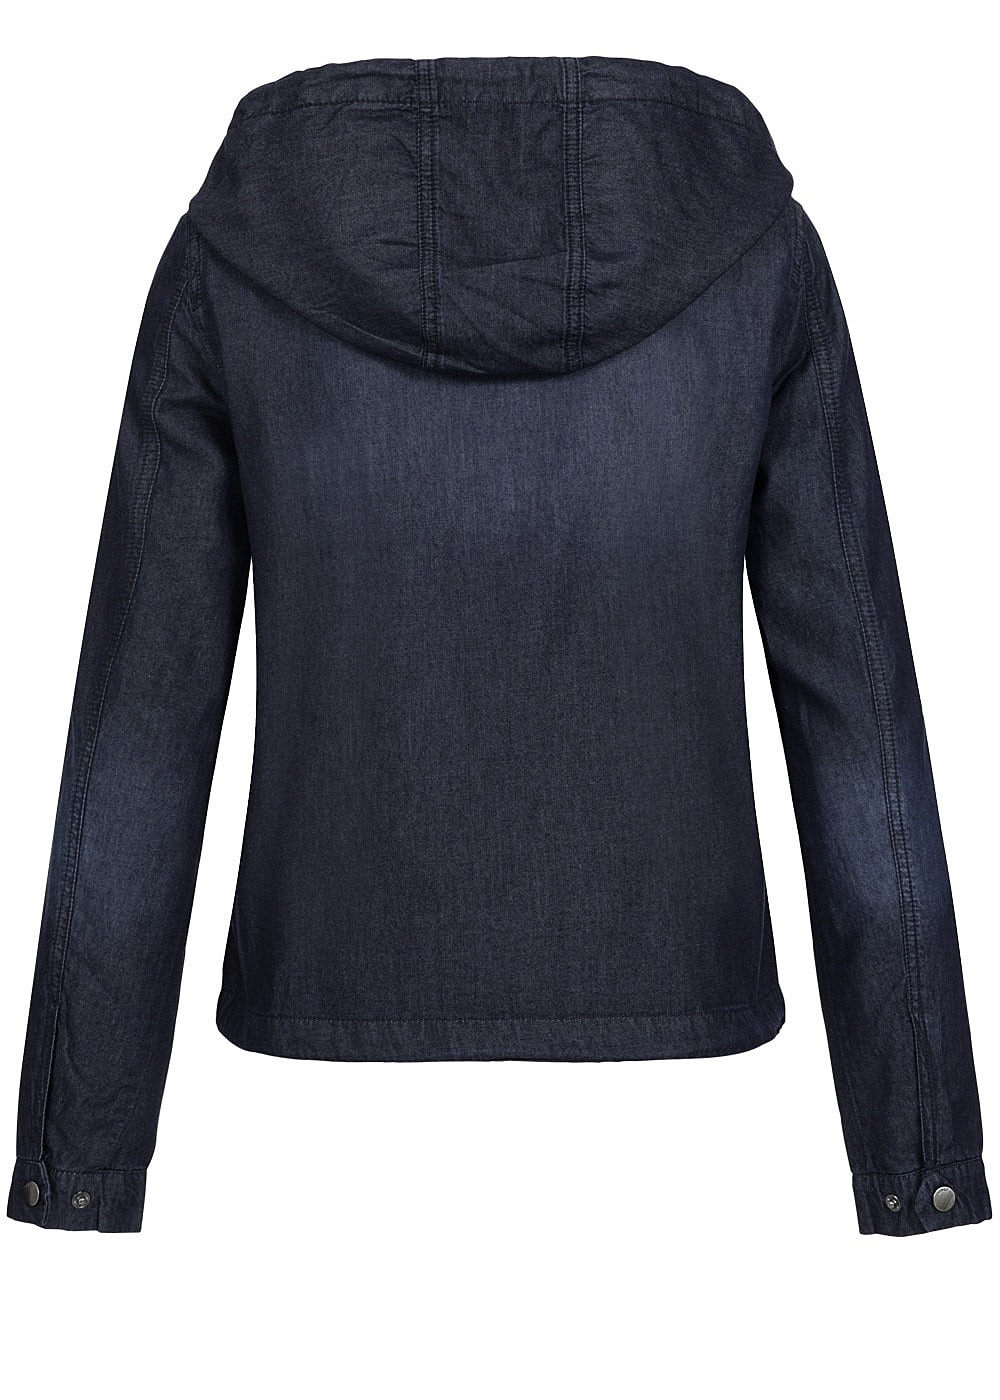 only damen short denim parka noos 2 taschen kapuze kordelzug medium blau denim 77onlineshop. Black Bedroom Furniture Sets. Home Design Ideas